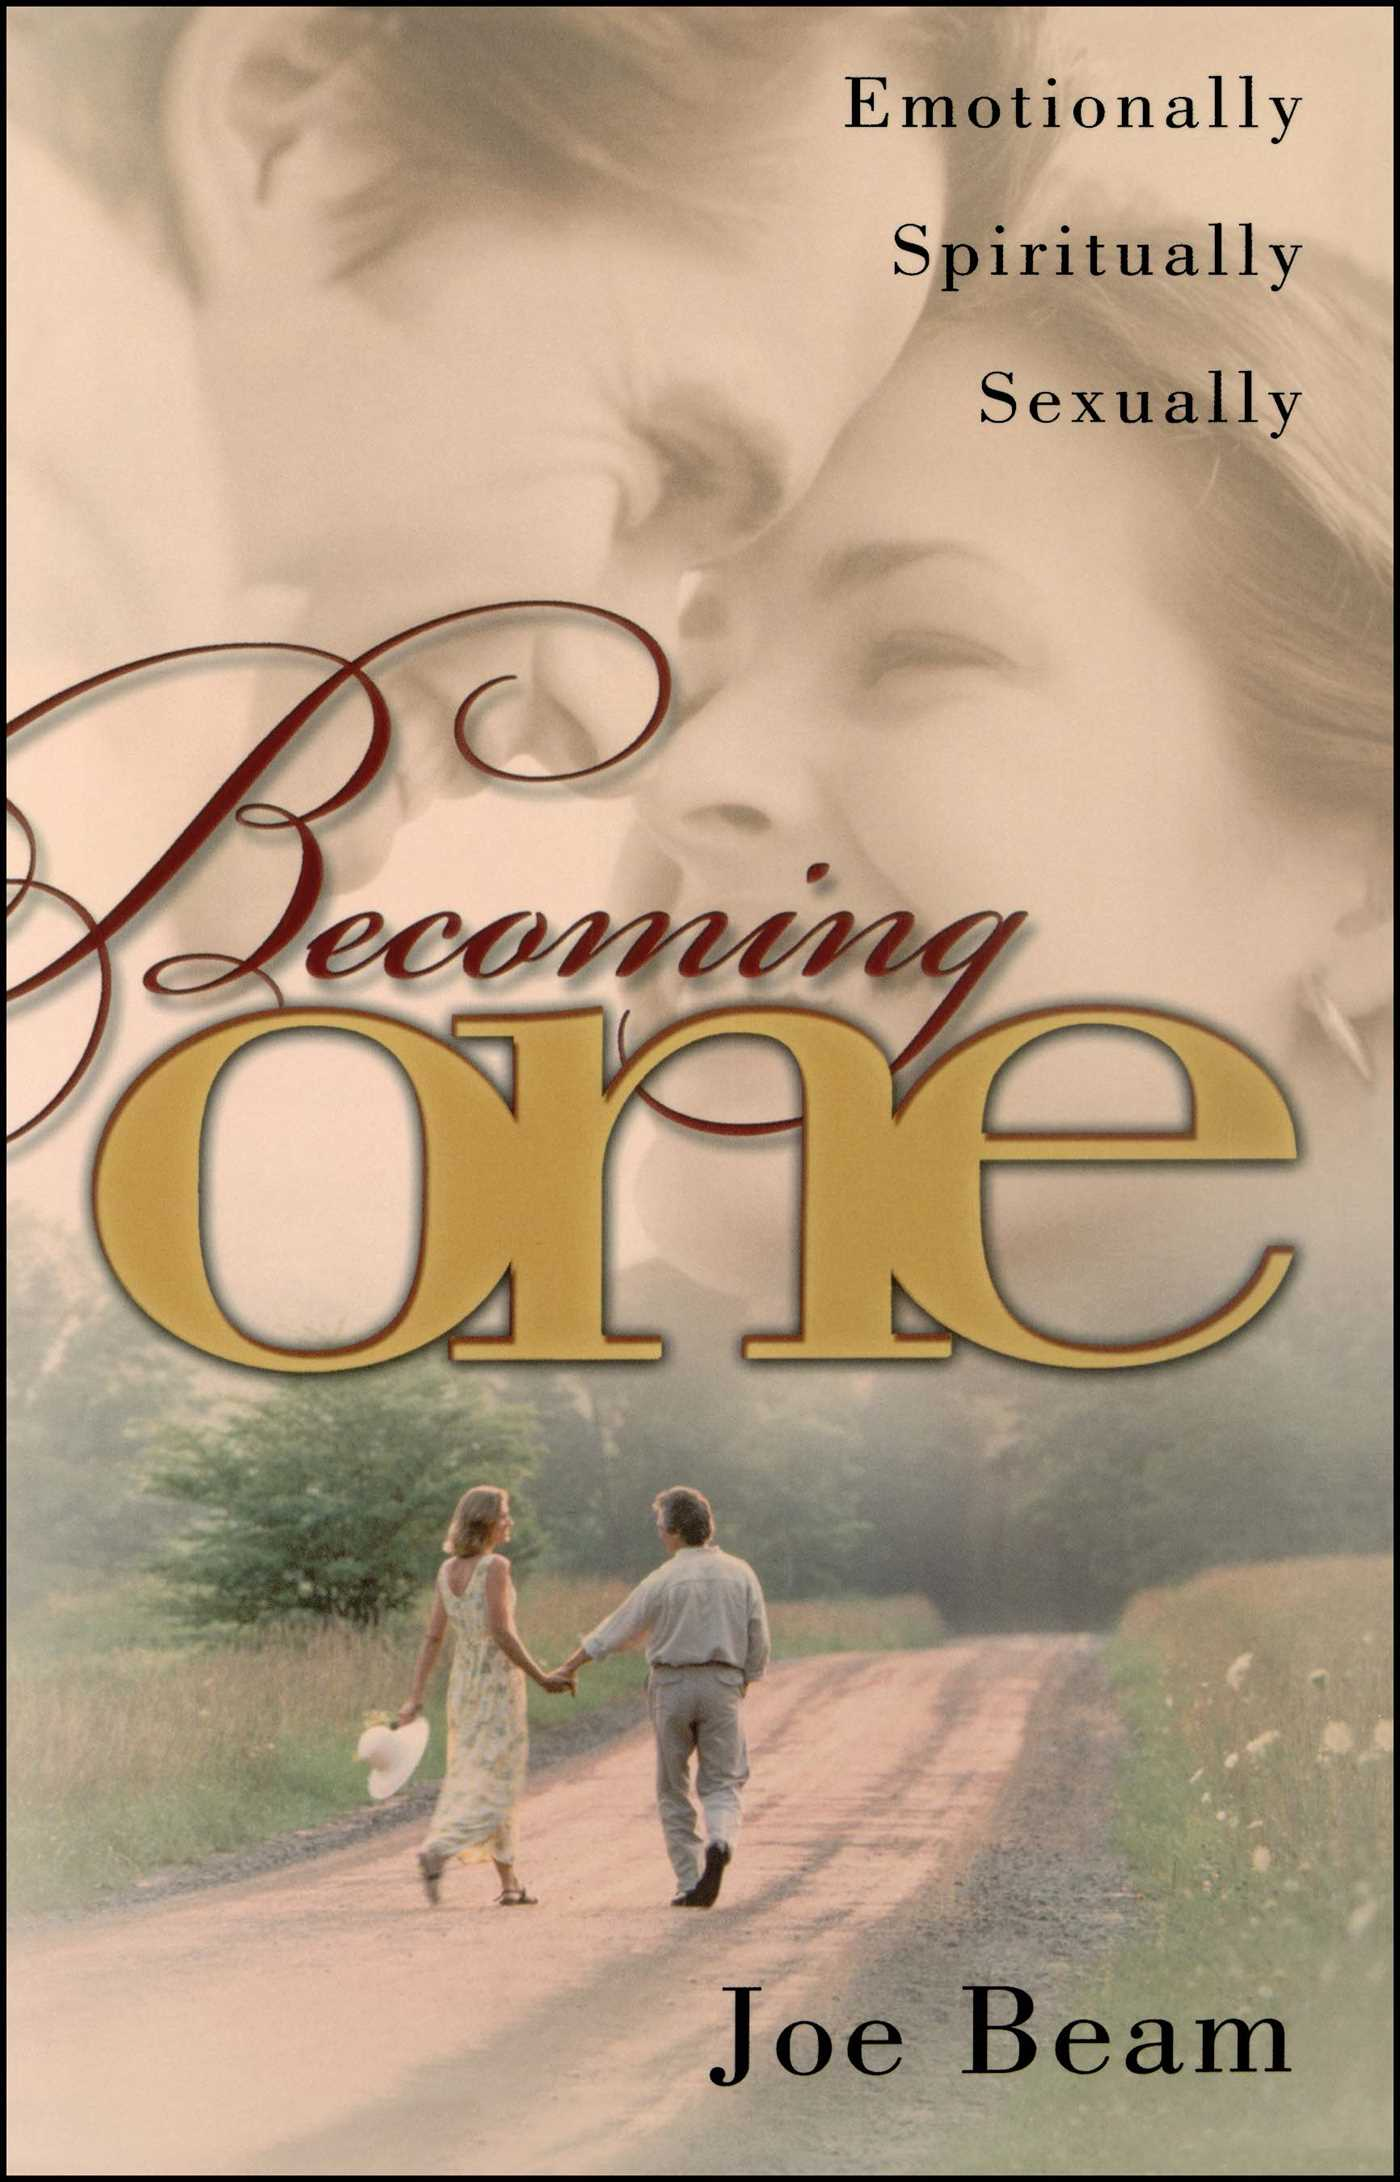 Becoming-one-9781451605228_hr